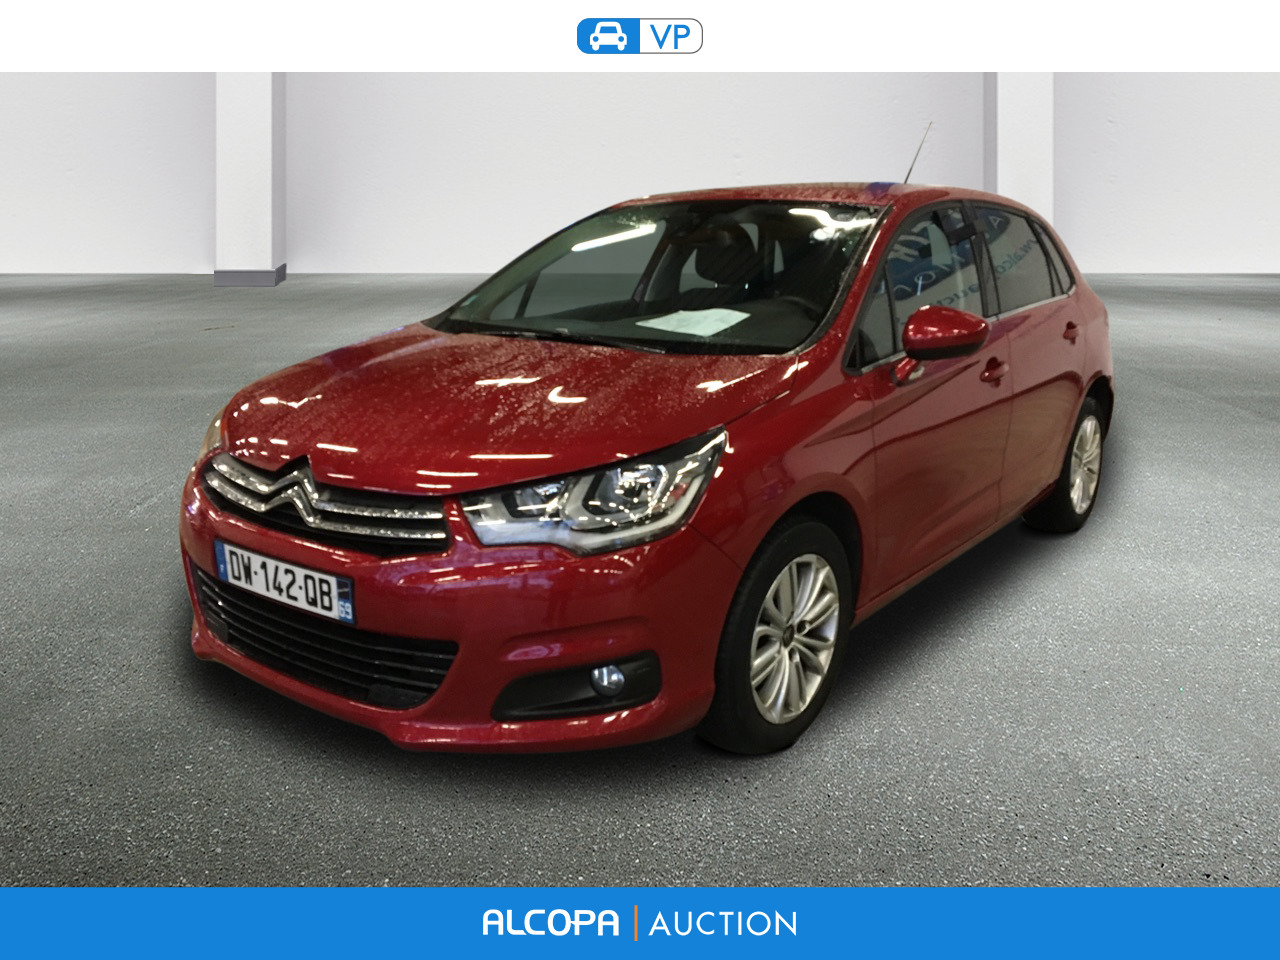 citroen c4 c4 bluehdi 120ch millenium business s s eat6 rennes alcopa auction. Black Bedroom Furniture Sets. Home Design Ideas